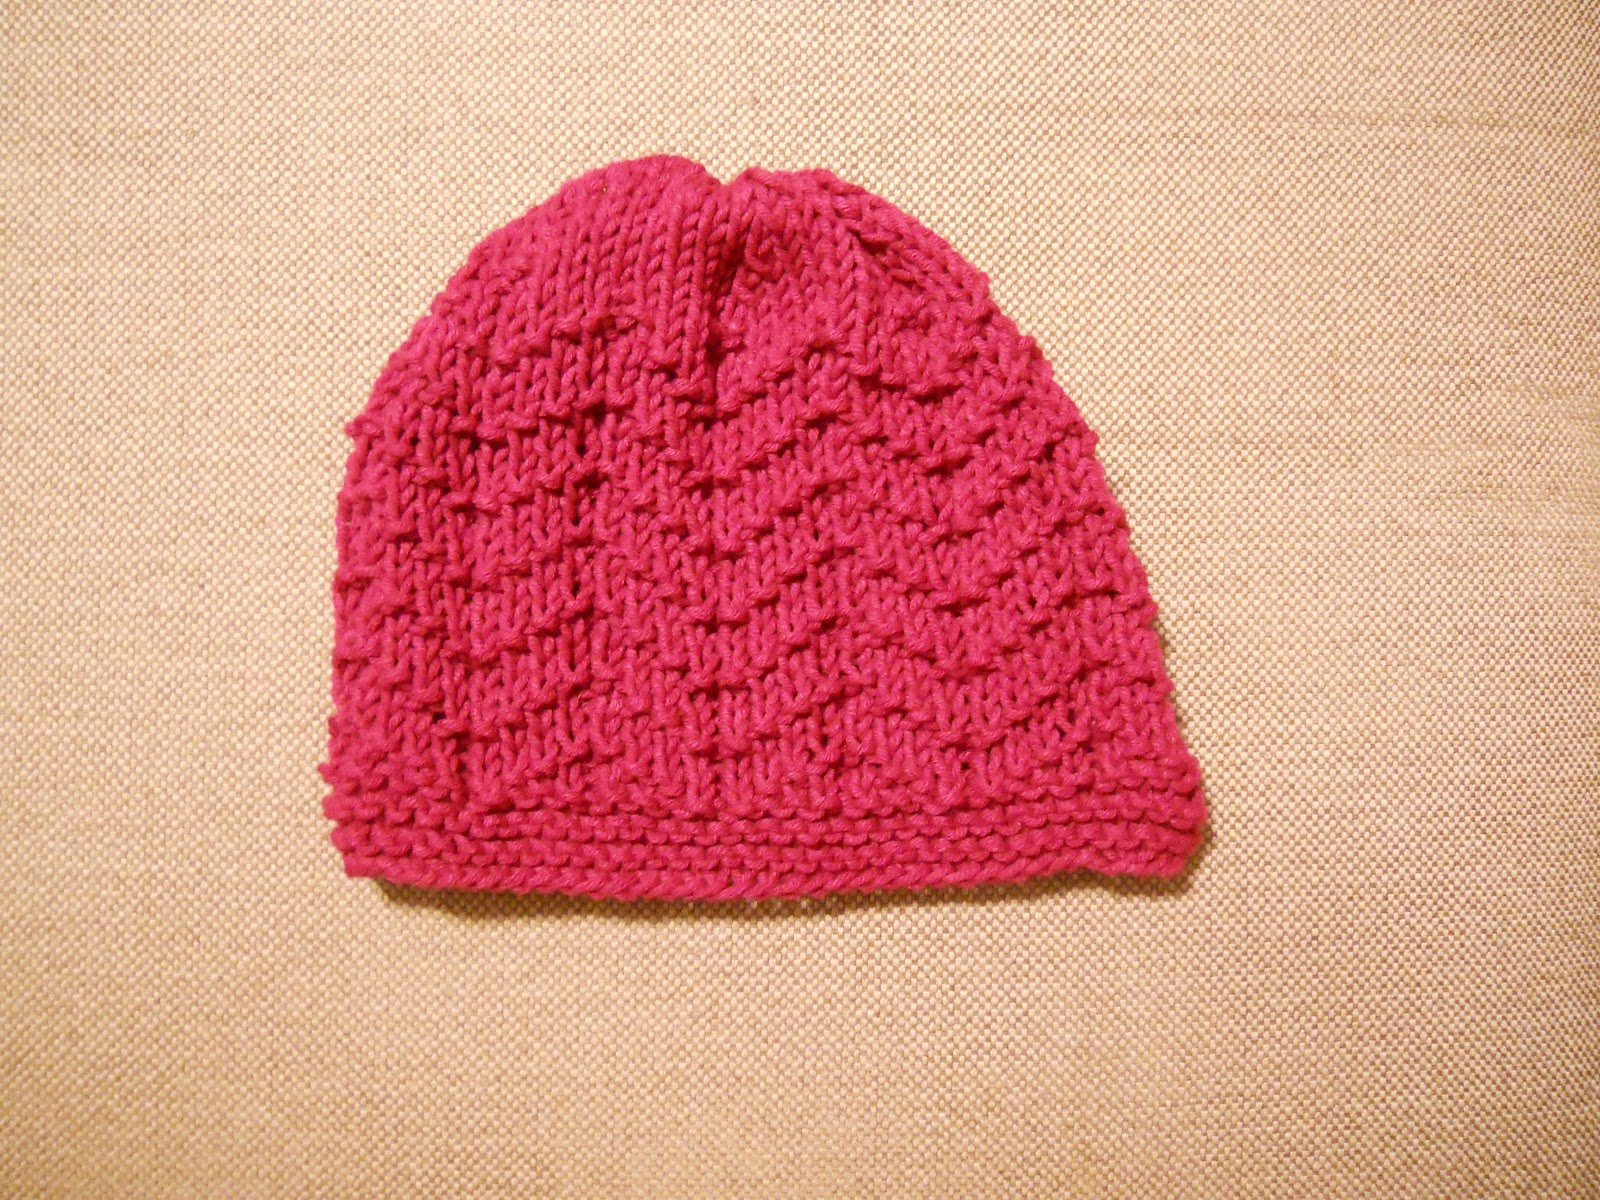 Knitting with Schnapps: Introducing the Point of Hope Reversible Chemo Cap!